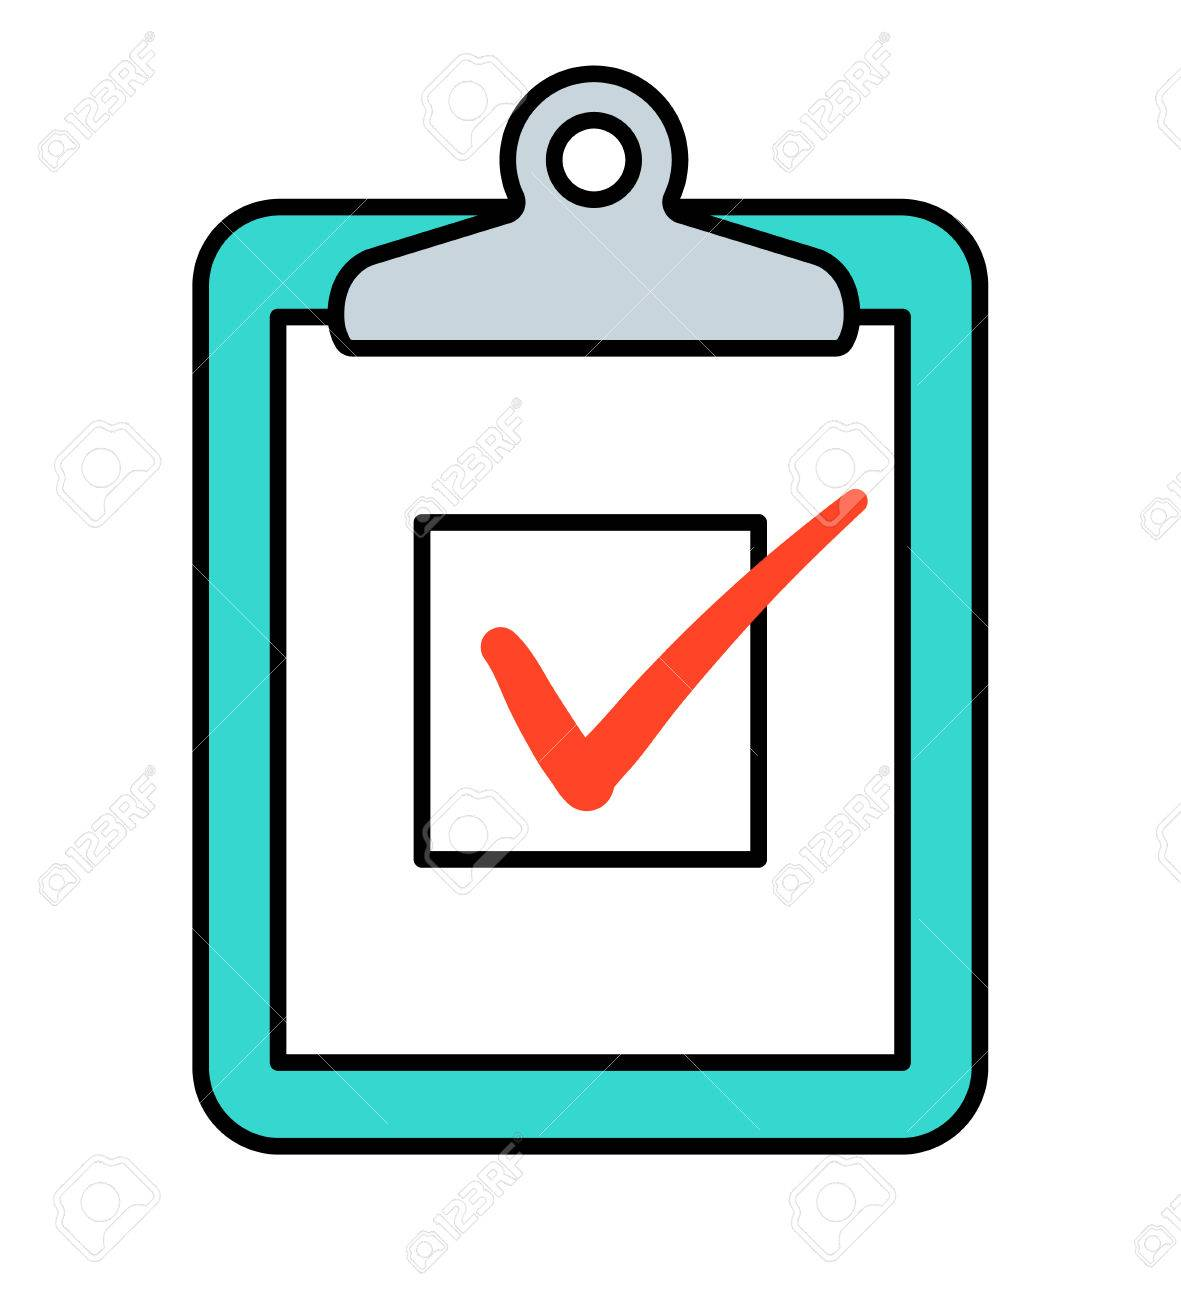 checkbox with red check marks on clipboard vector icon royalty free rh 123rf com clipboard vector icon clipboard vector free download